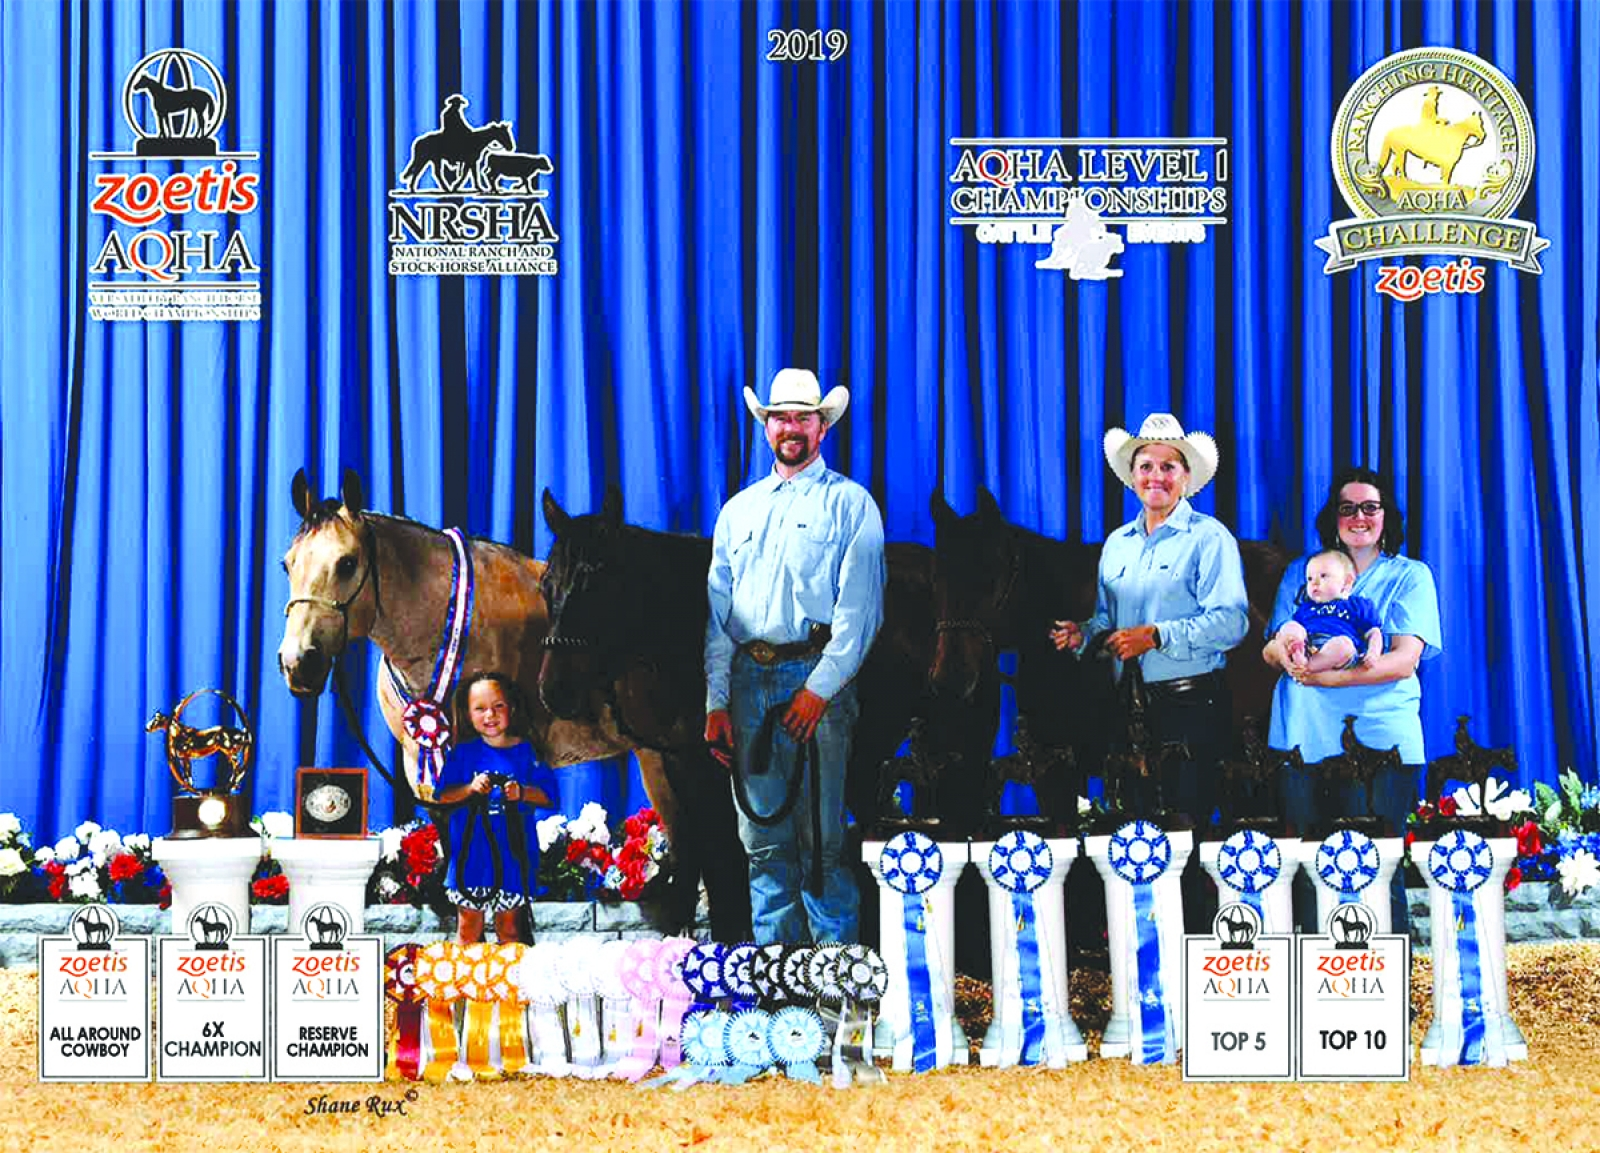 The Ostranders stand with BOXO Valentines Cat, BOXO Chicas Merada and BOXO Heavens Heels after winning the World Championship. Pictured (L-R) is Tenley Ostrander, Stetson Ostrander, Jecca Ostrander, Jensen Ostrander and Courtney Ostrander.